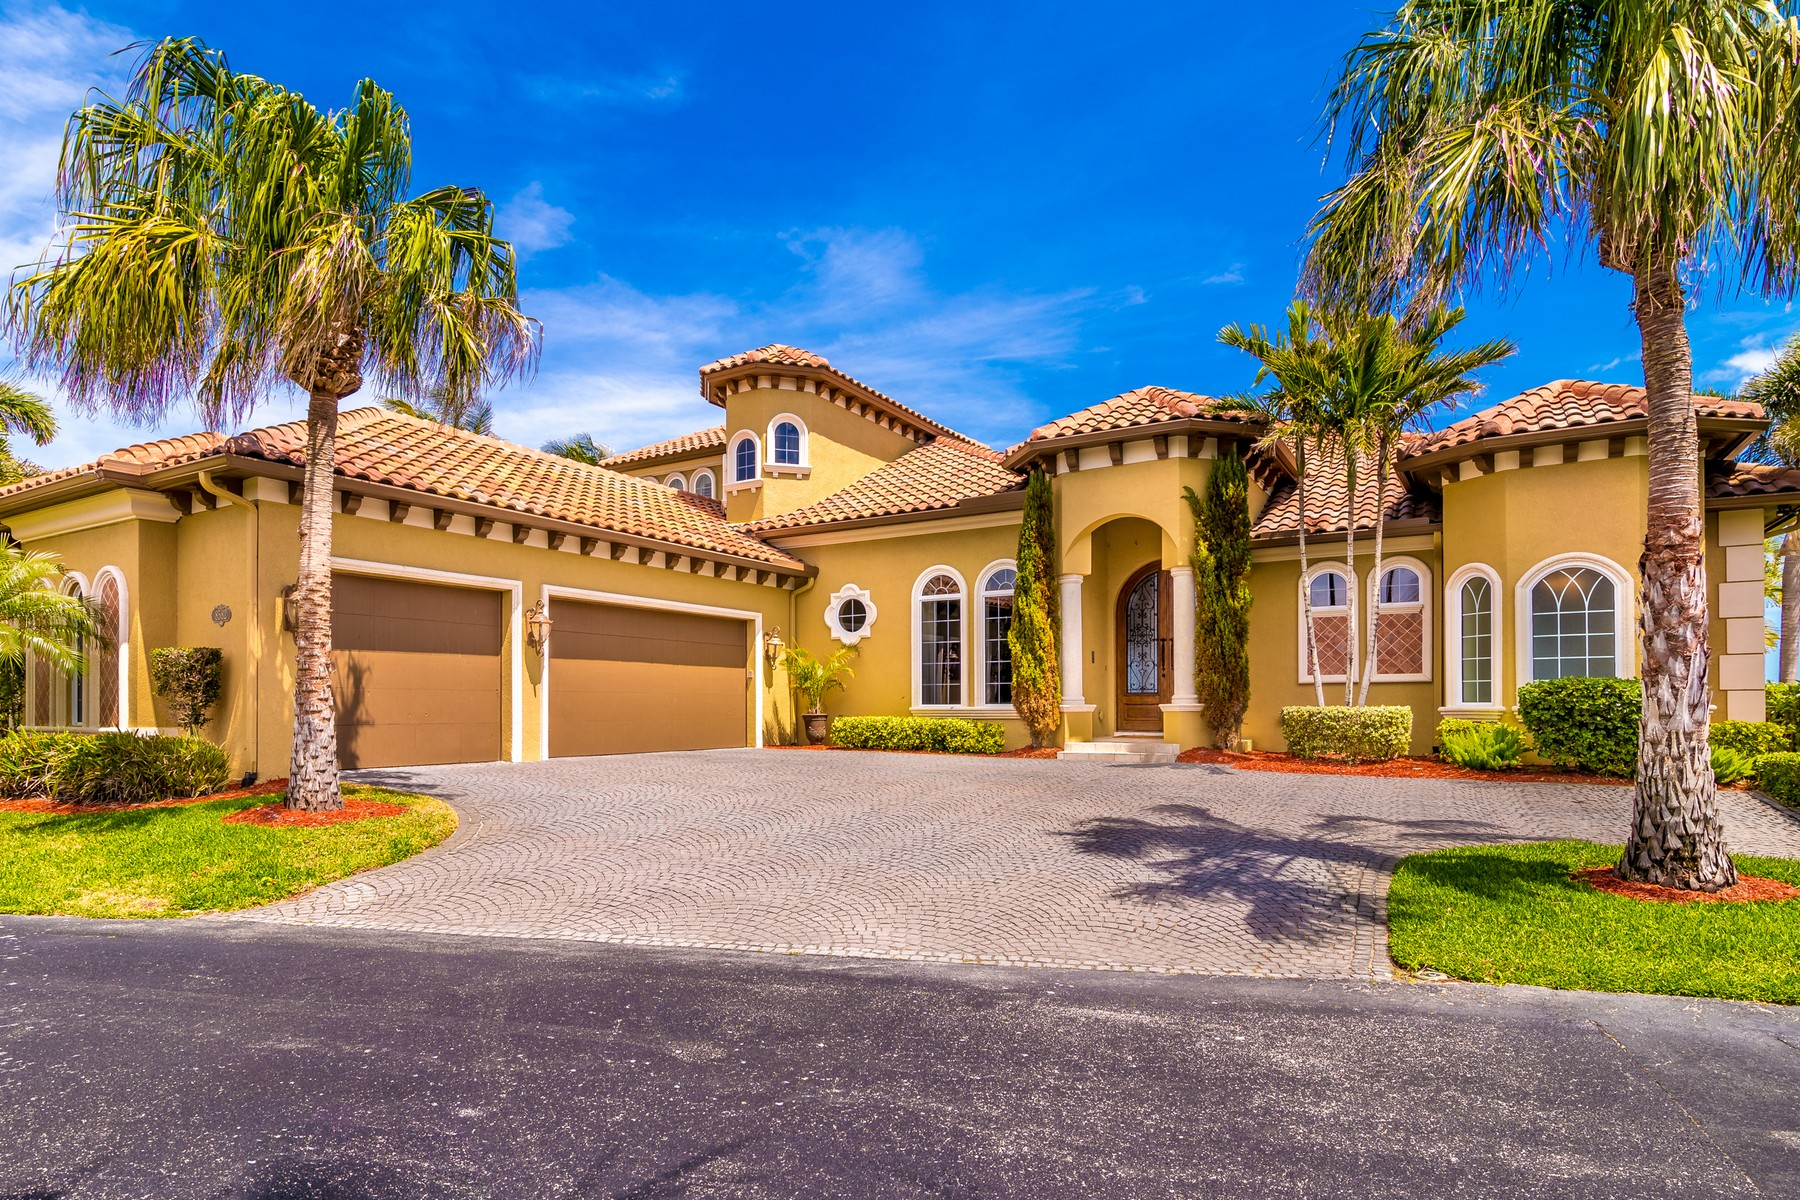 Single Family Home for Sale at An Absolute Gem! 8582 Eden Isles Merritt Island, Florida 32952 United States